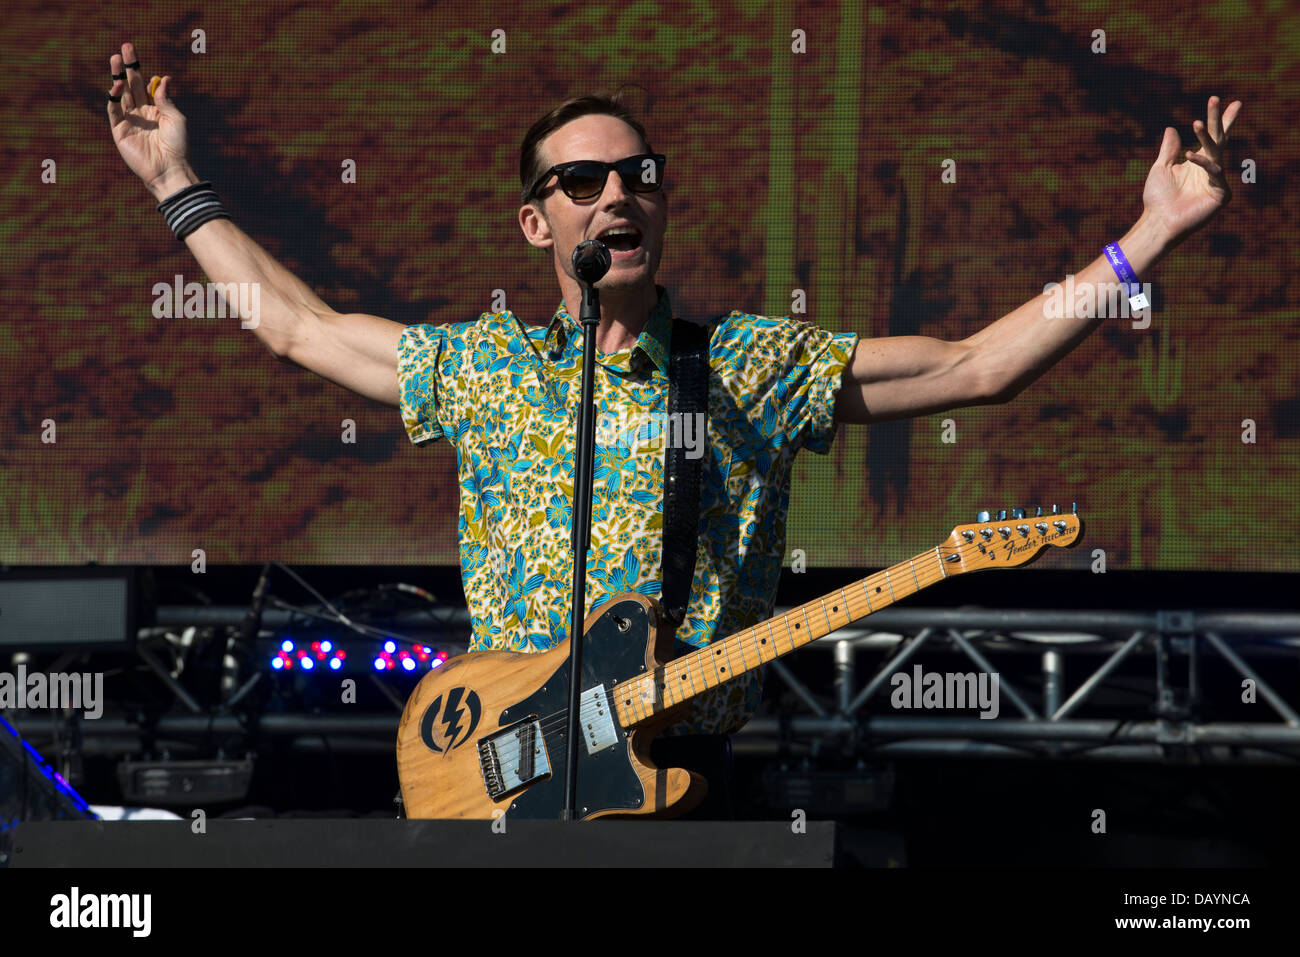 Dan Gillespie Sells, vocals and guitar, The Feeling Performs at Go Local, Queen Elizabeth Olympic Park, London. - Stock Image